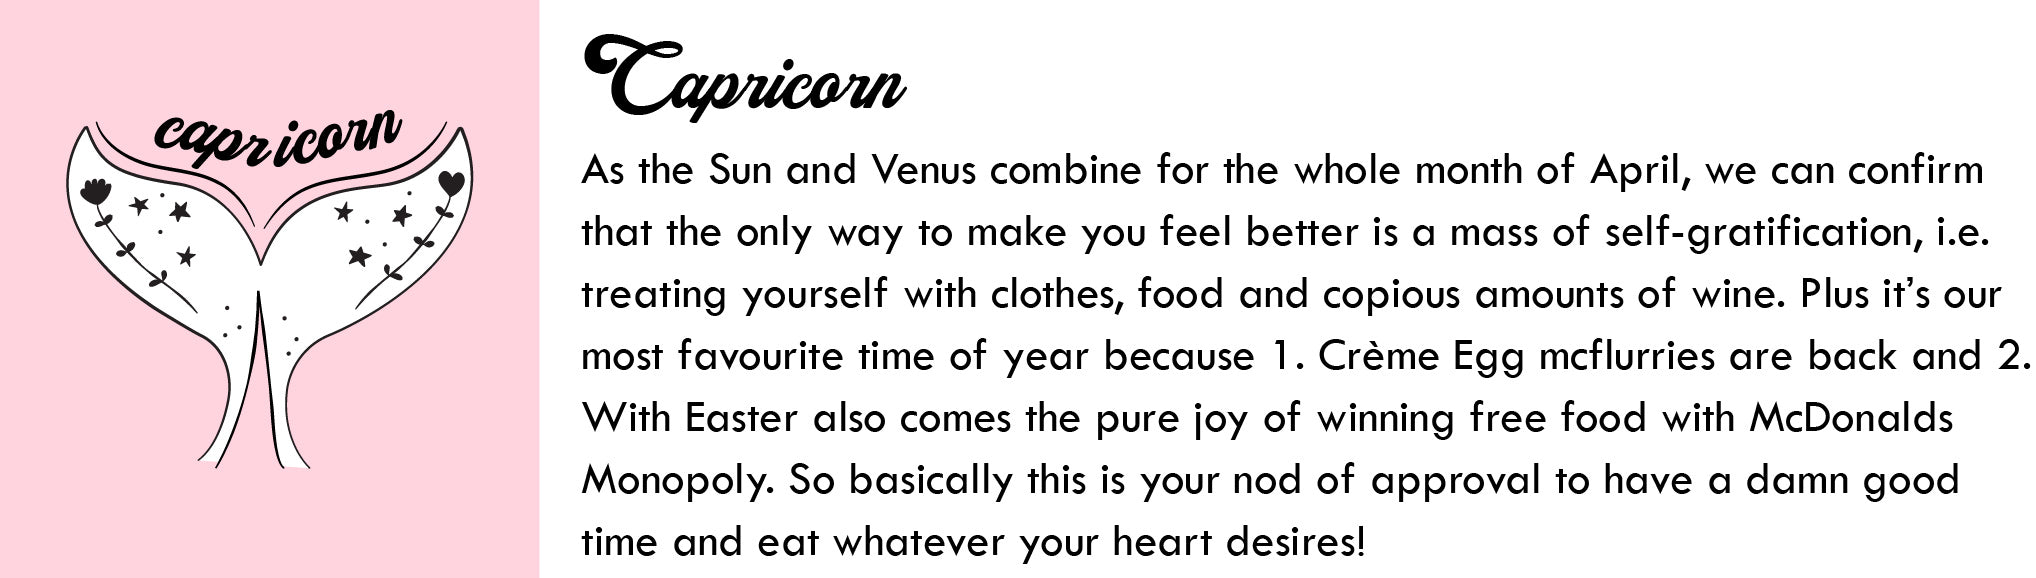 Capricorn April Horoscope | Blog | Skinnydip London